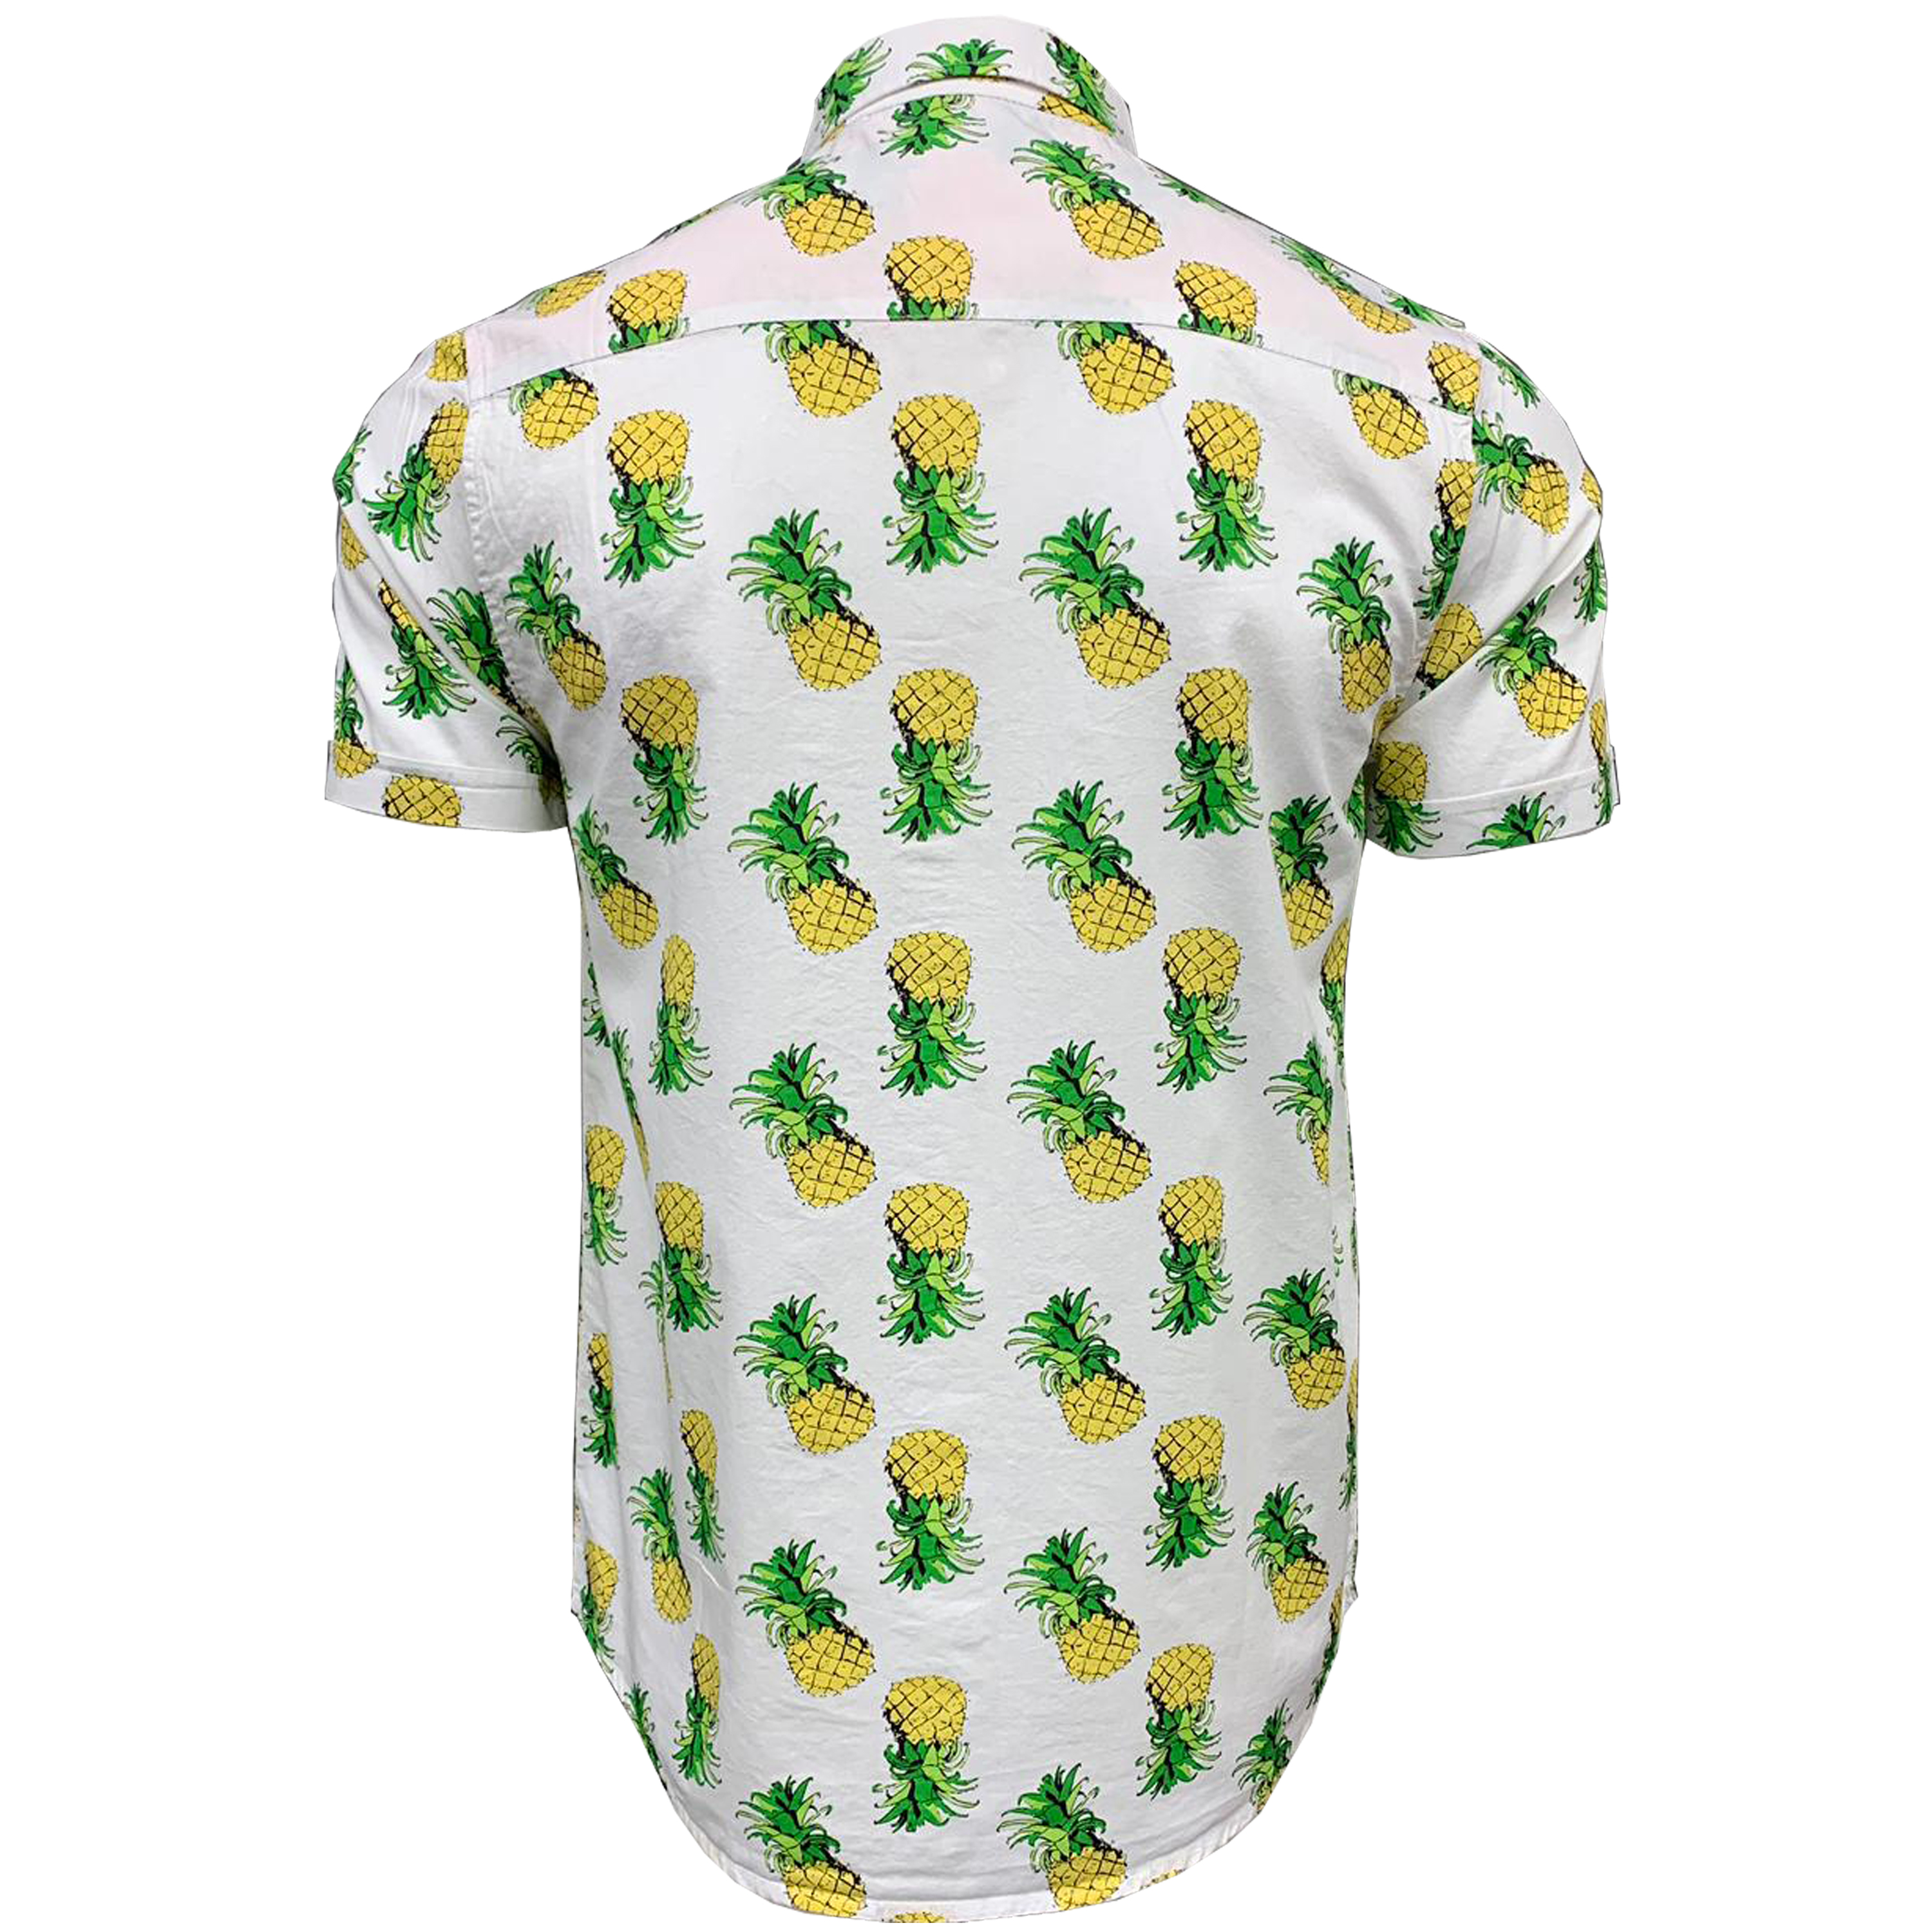 Mens-Cotton-Shirt-Brave-Soul-Pineapple-Can-Printed-Short-Sleeved-Casual-Summer thumbnail 6